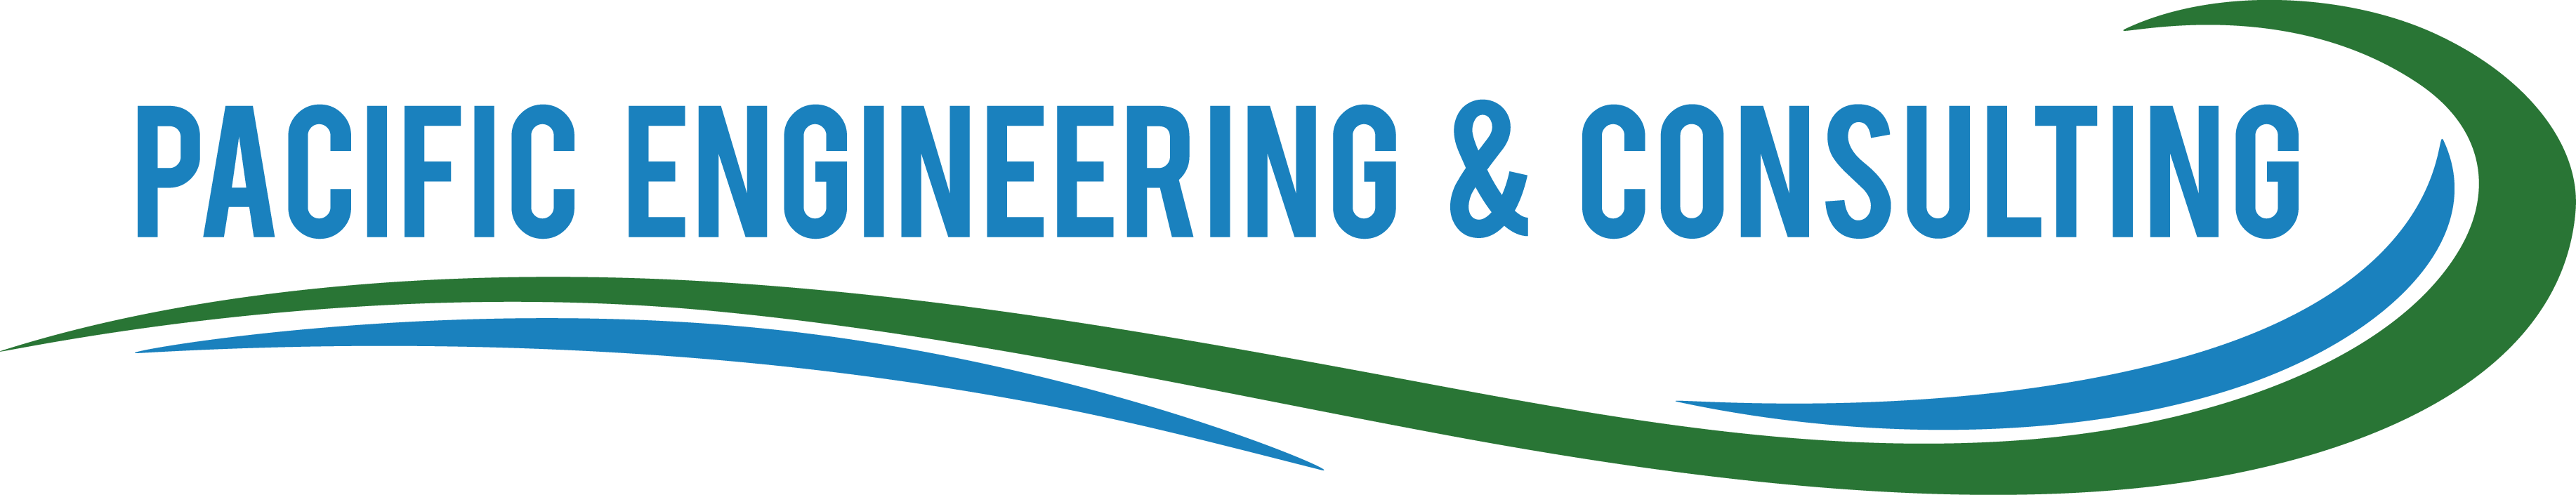 Pacific Engineering & Consulting Logo Final